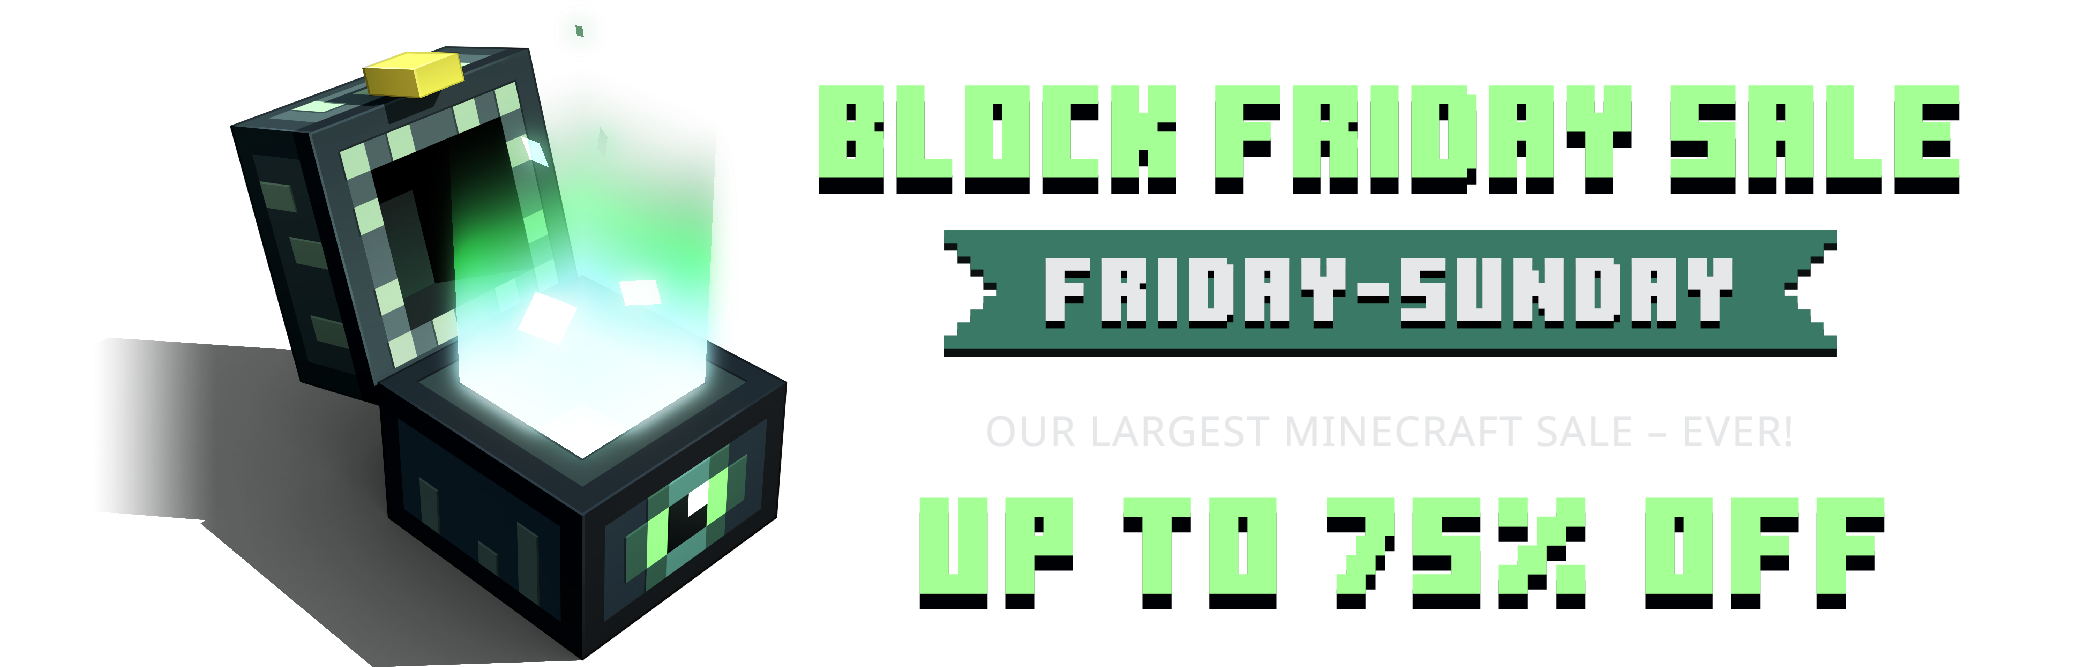 Block Friday Sale: Up to 75% Off. Friday-Sunday. Out Largest Mincraft sale ever!